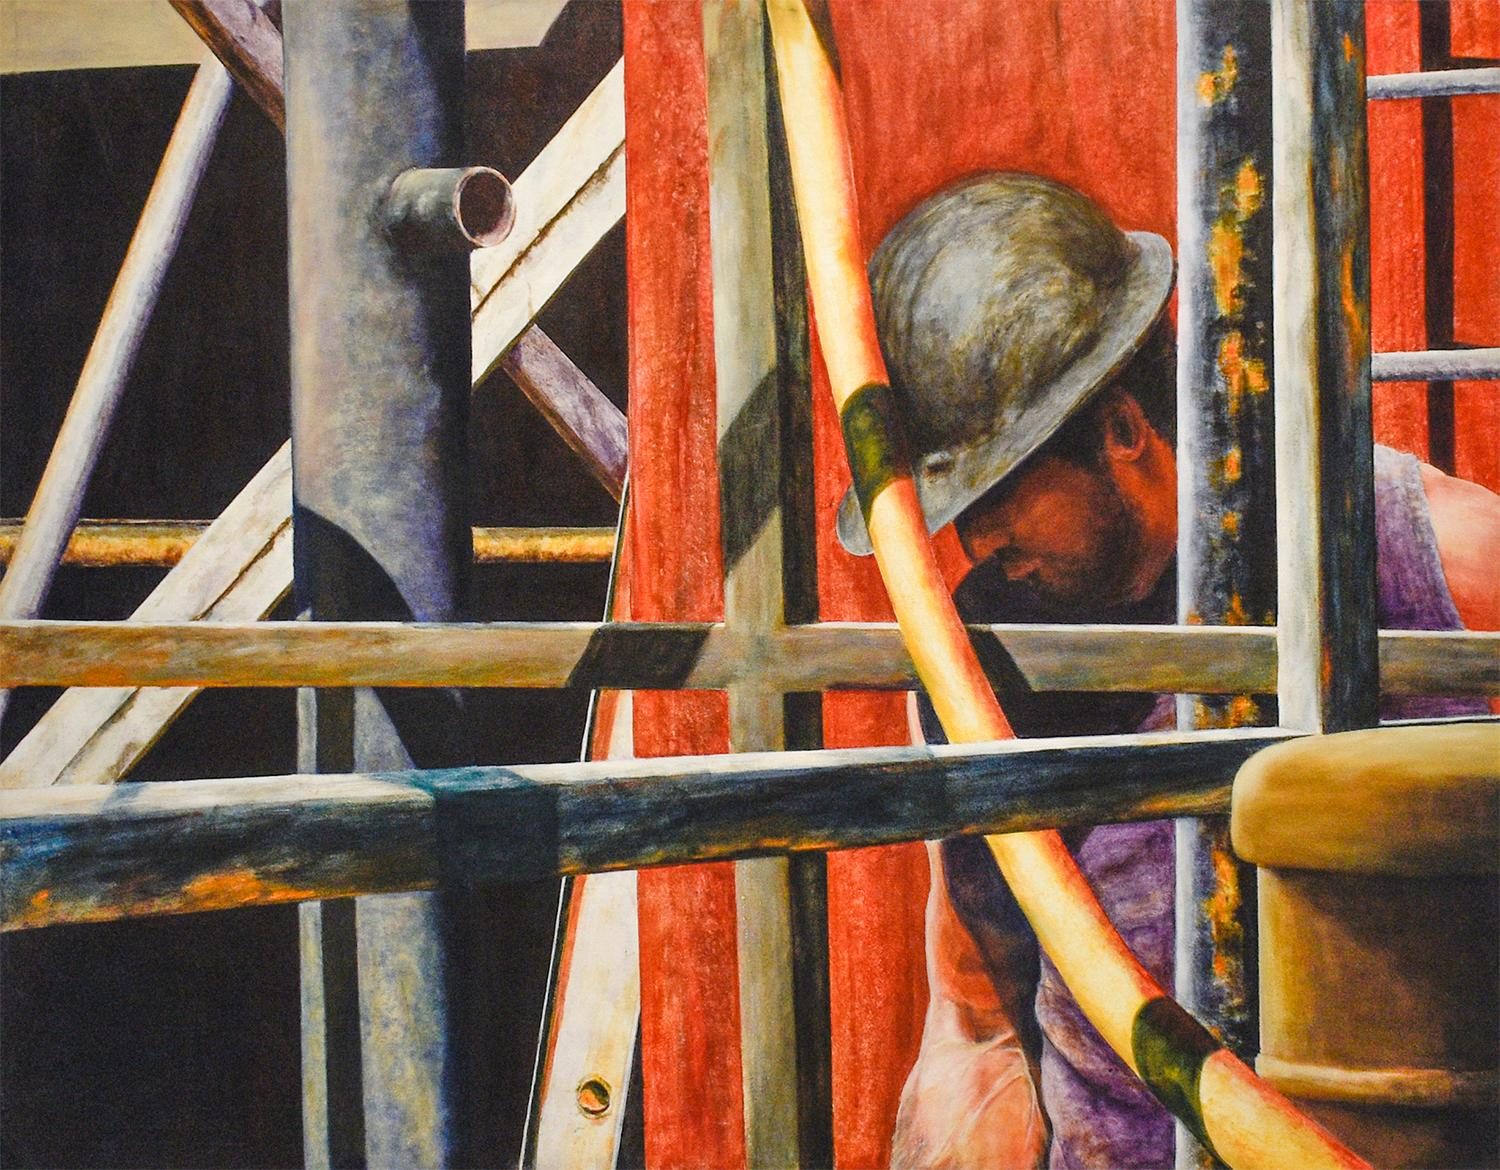 Men at Work #5 (Framed Figurative Oil Painting of Construction Worker in Red)